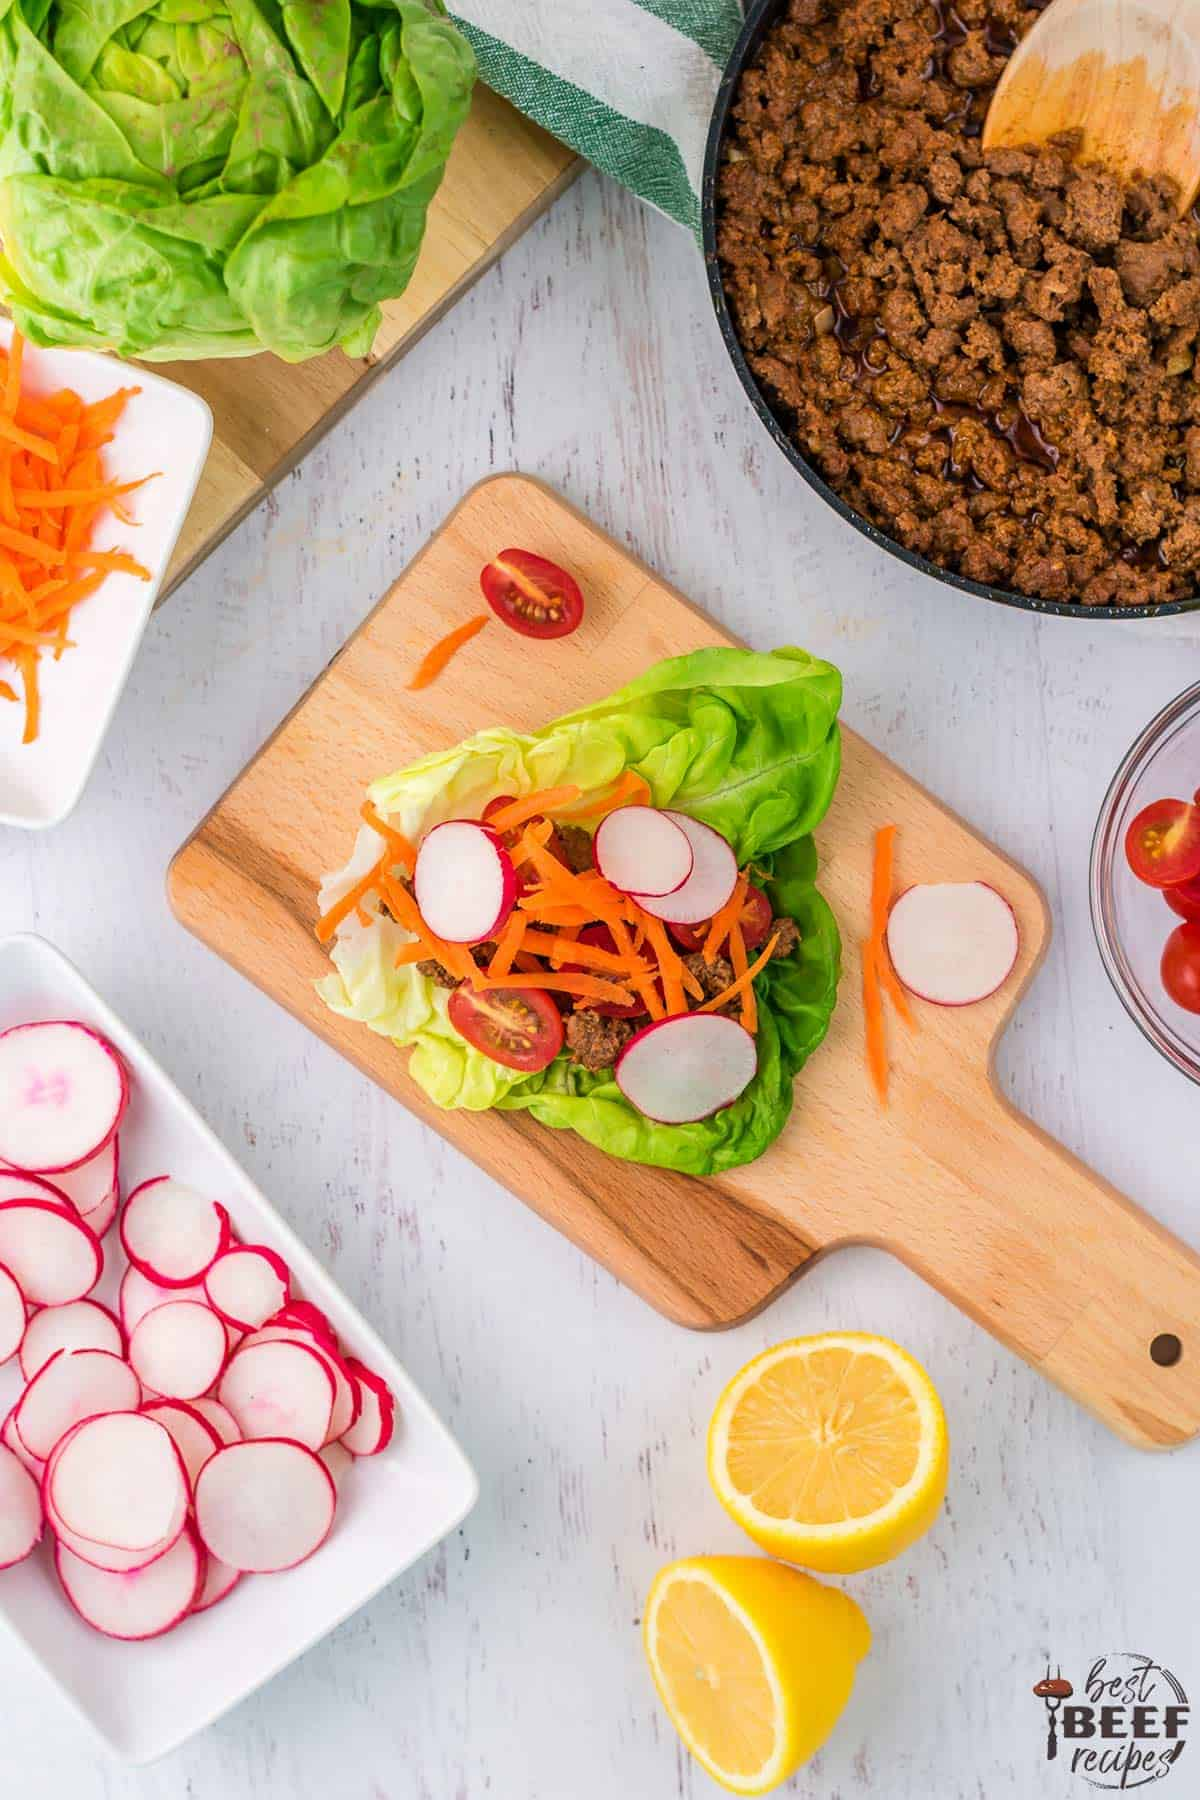 Portuguese-style beef lettuce wraps recipe on a wooden serving board